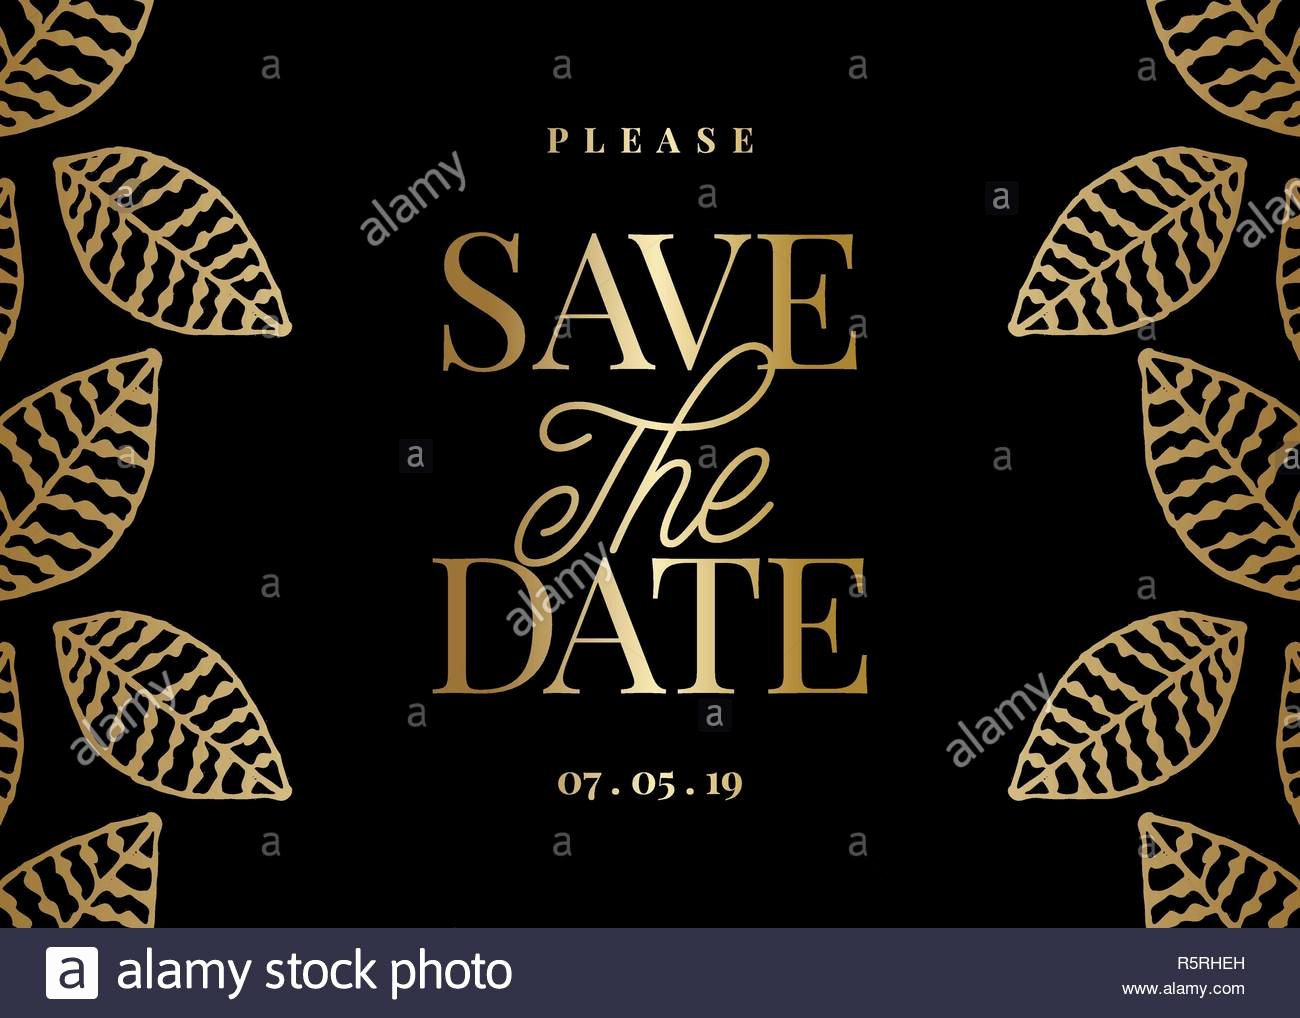 Save the Date Text Template Inspirational Save the Date Template with Hand Drawn Golden Leaf Shapes